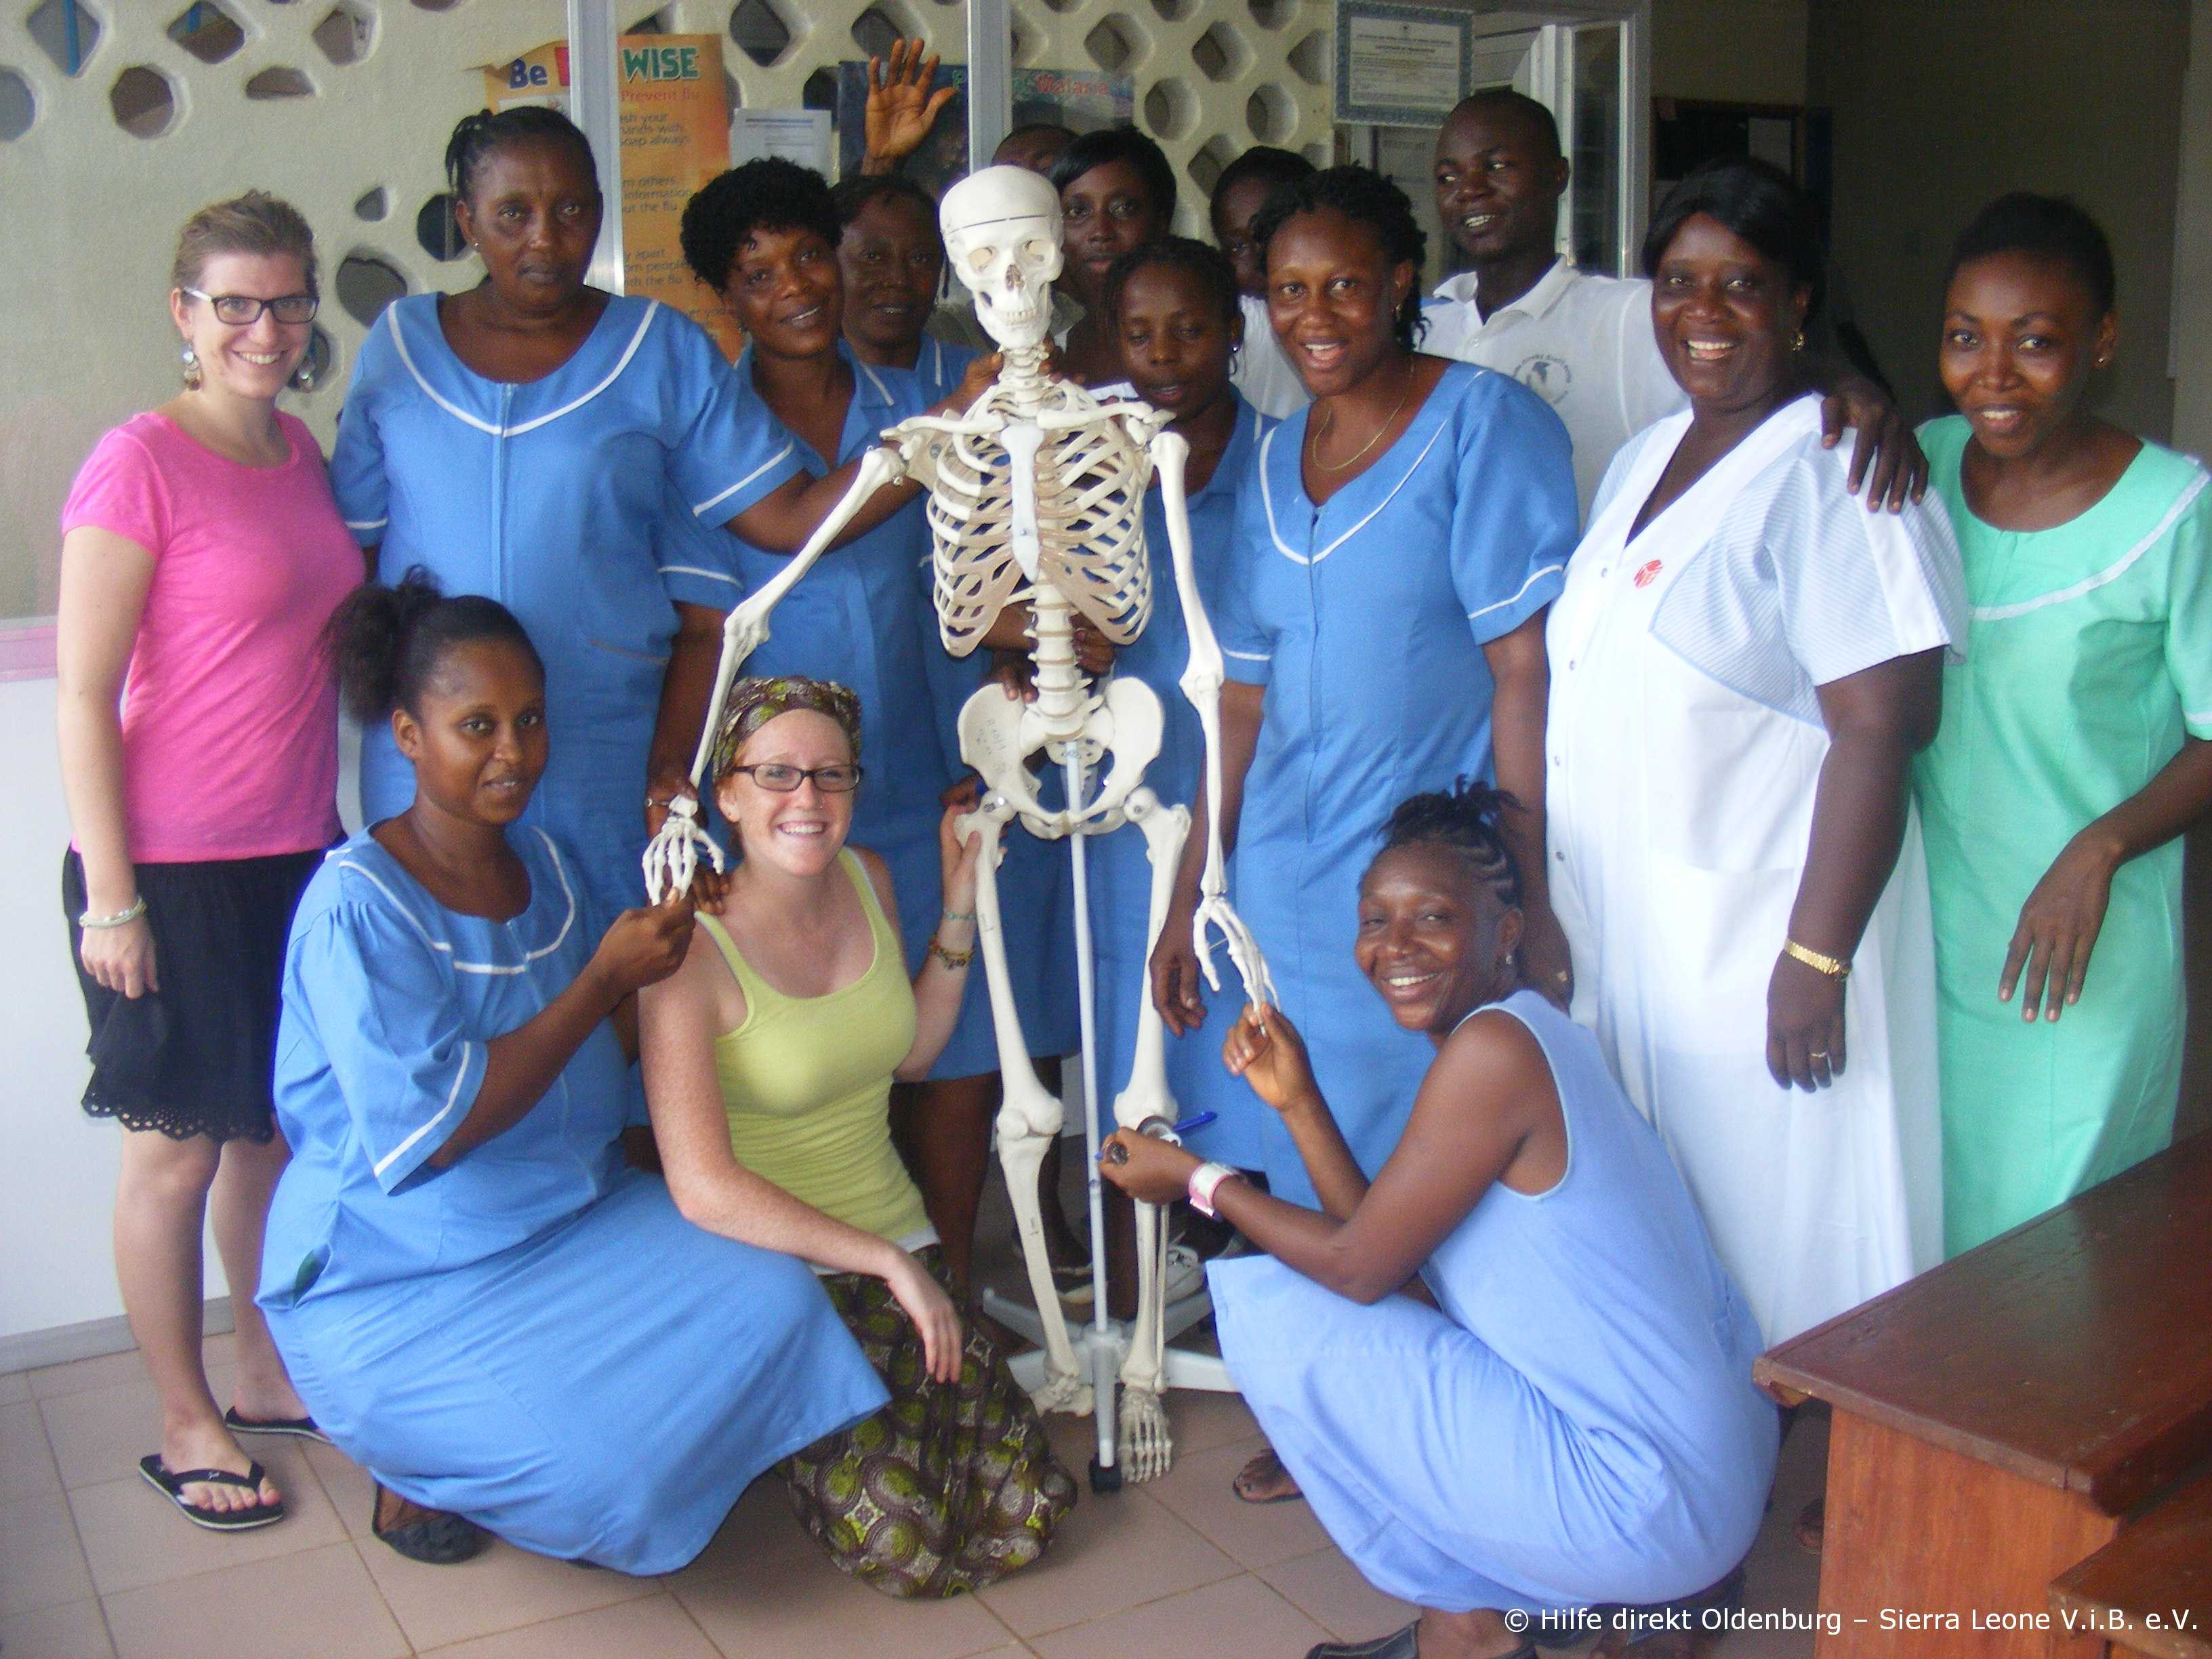 3B_Scientific_Skelett_Sierra_Leone_Hospital_Gruppenbild_20124.jpg